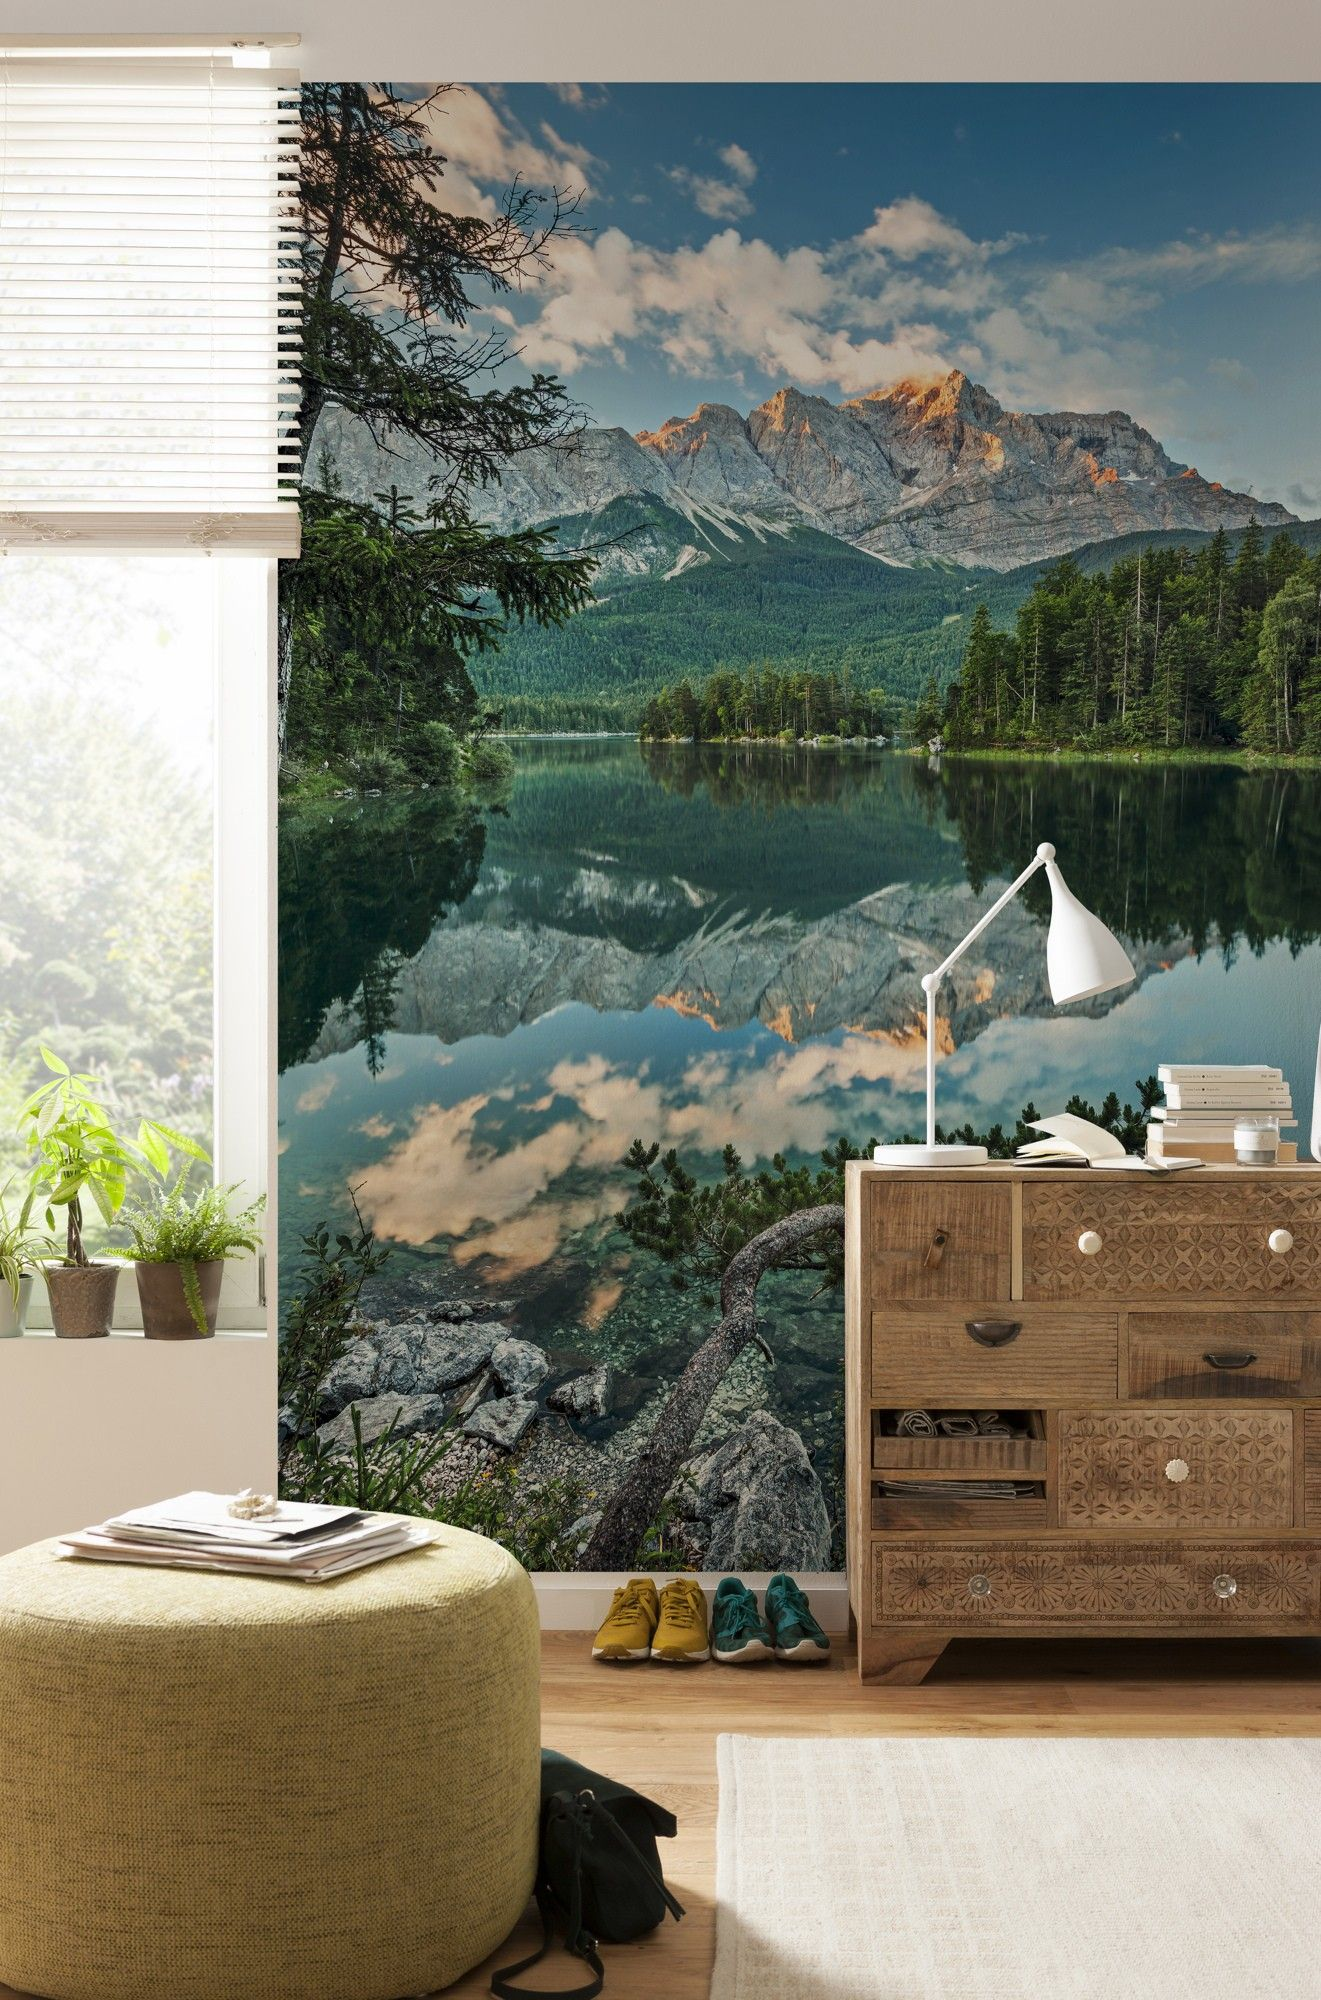 Download Wallpaper Mountain Room - lake-mountains-paper-wallpaper-5092-p  HD_70210.jpg